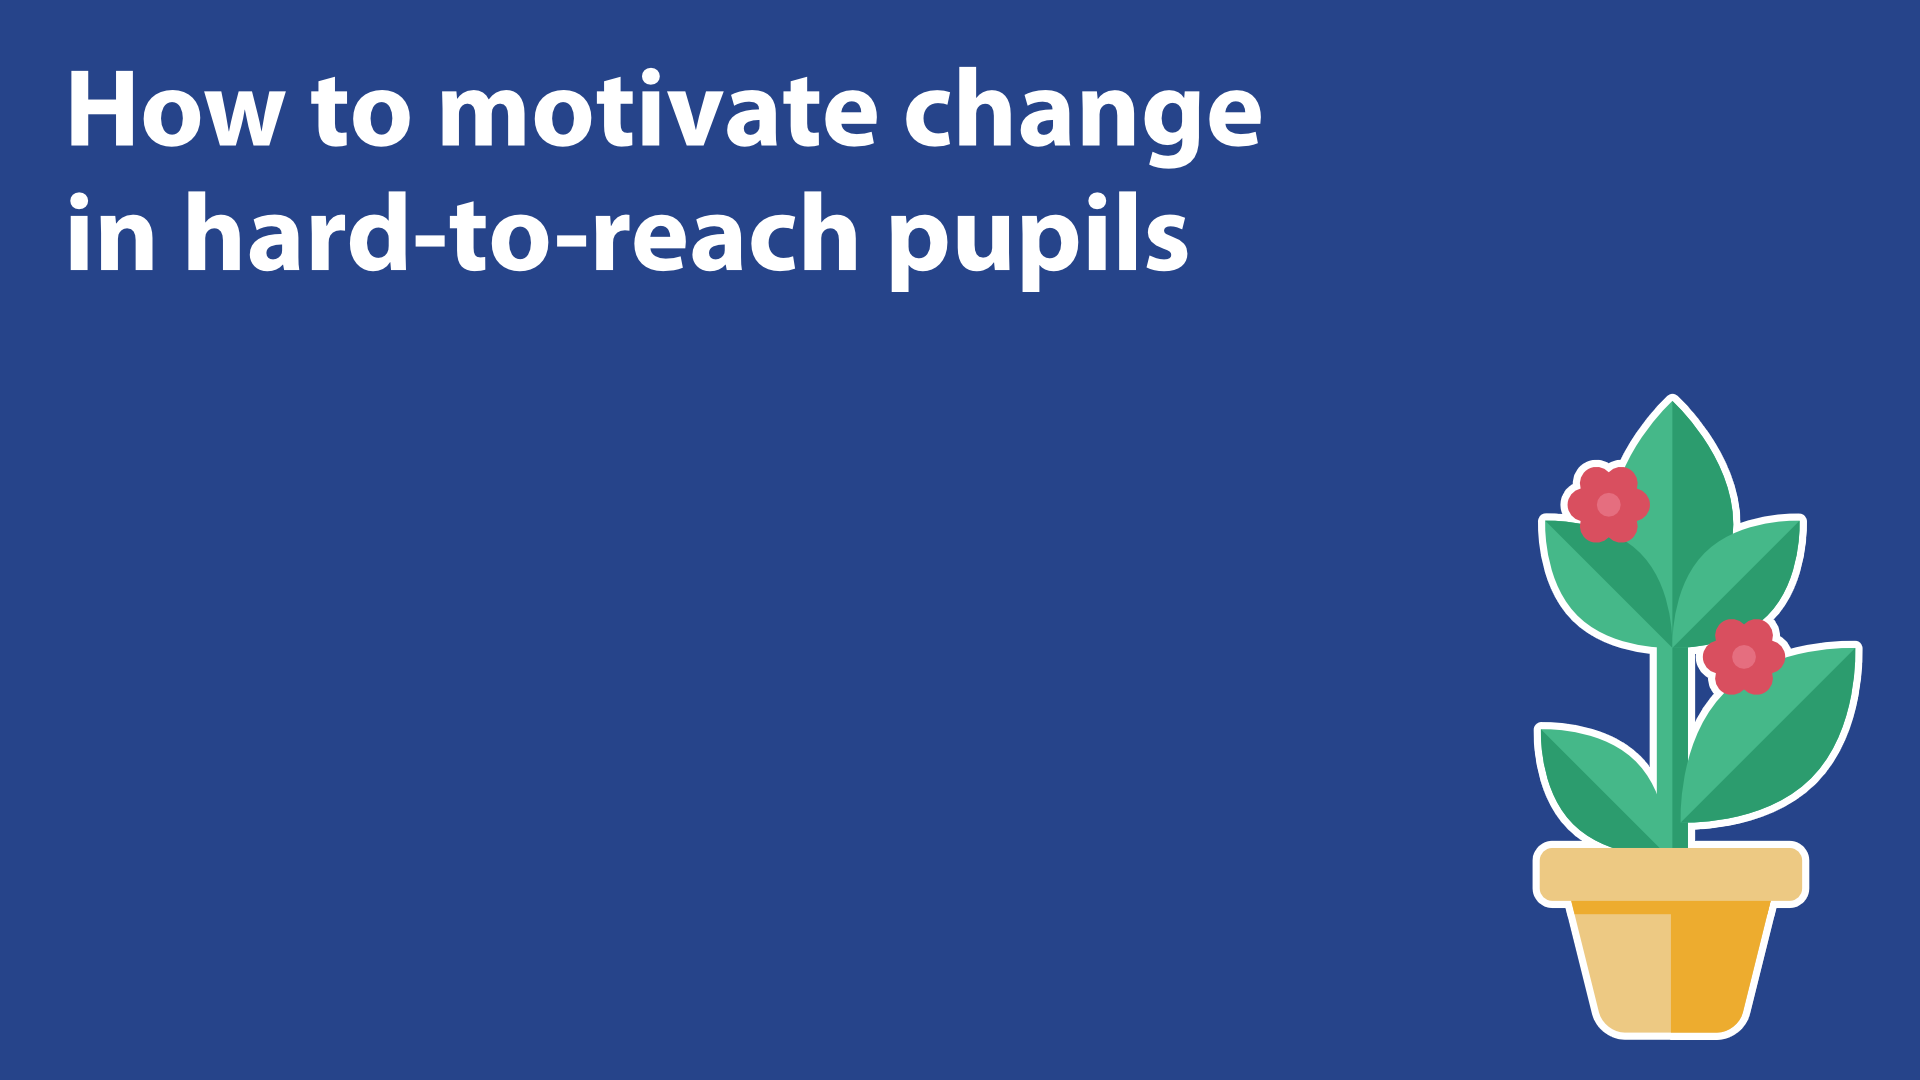 How To Motivate Change In Hard-To-Reach Pupils image